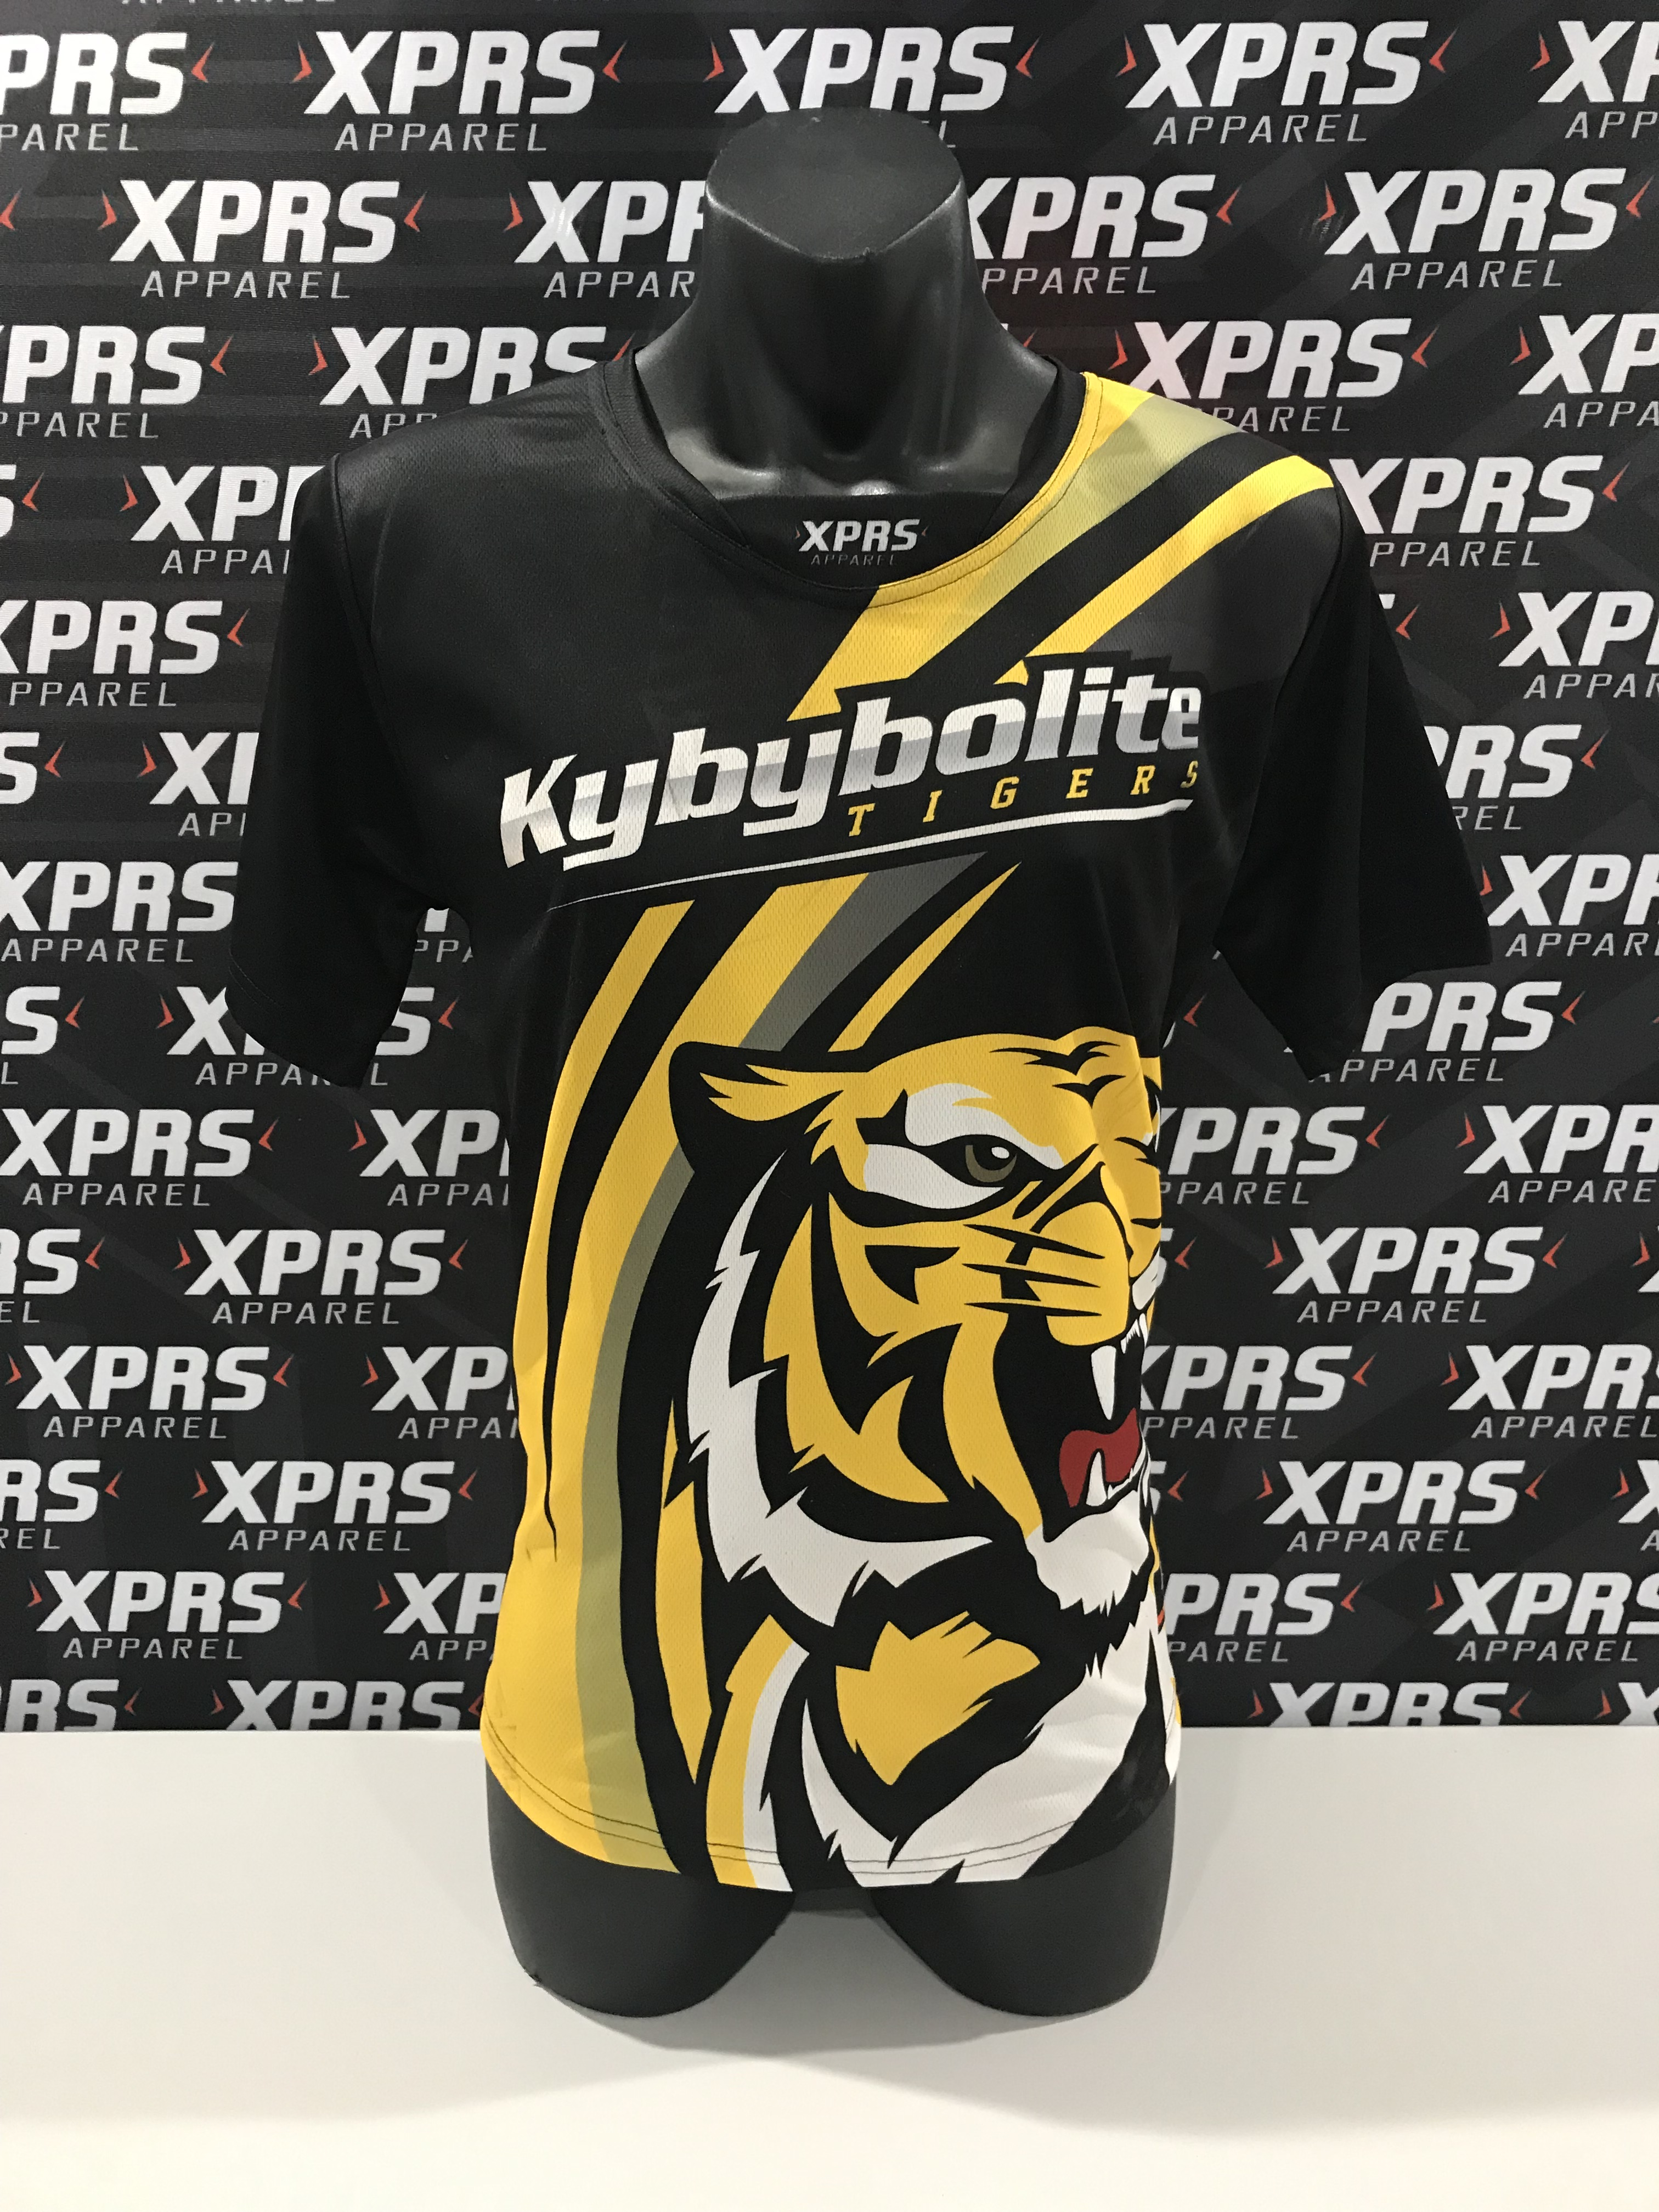 Kybybolite FC Warm Up Tee's